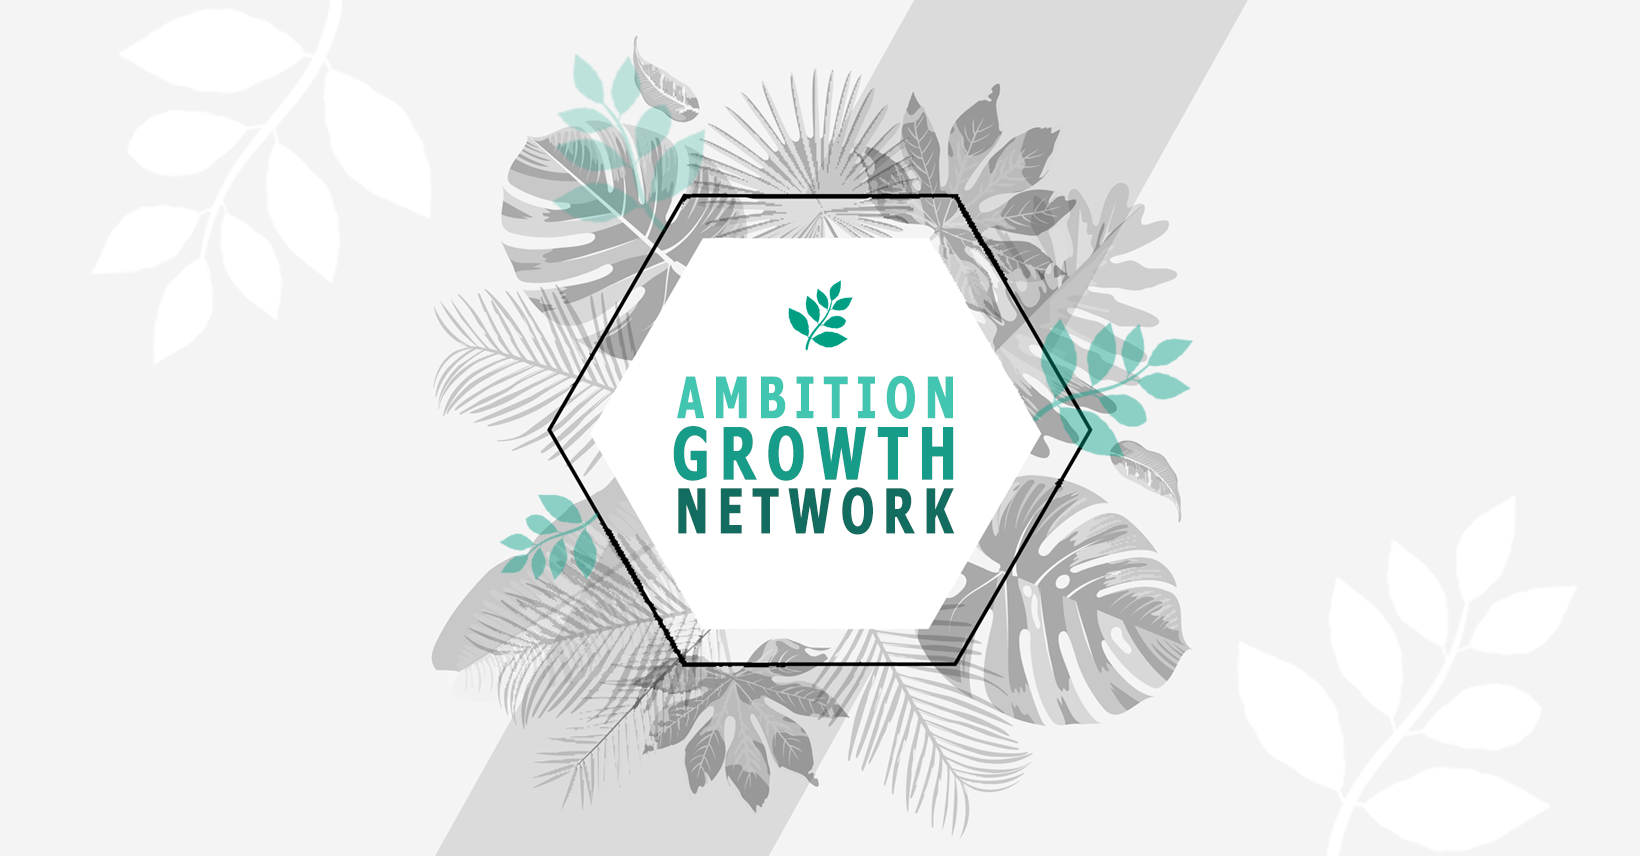 Ambition Growth Network By Karlie and Jo